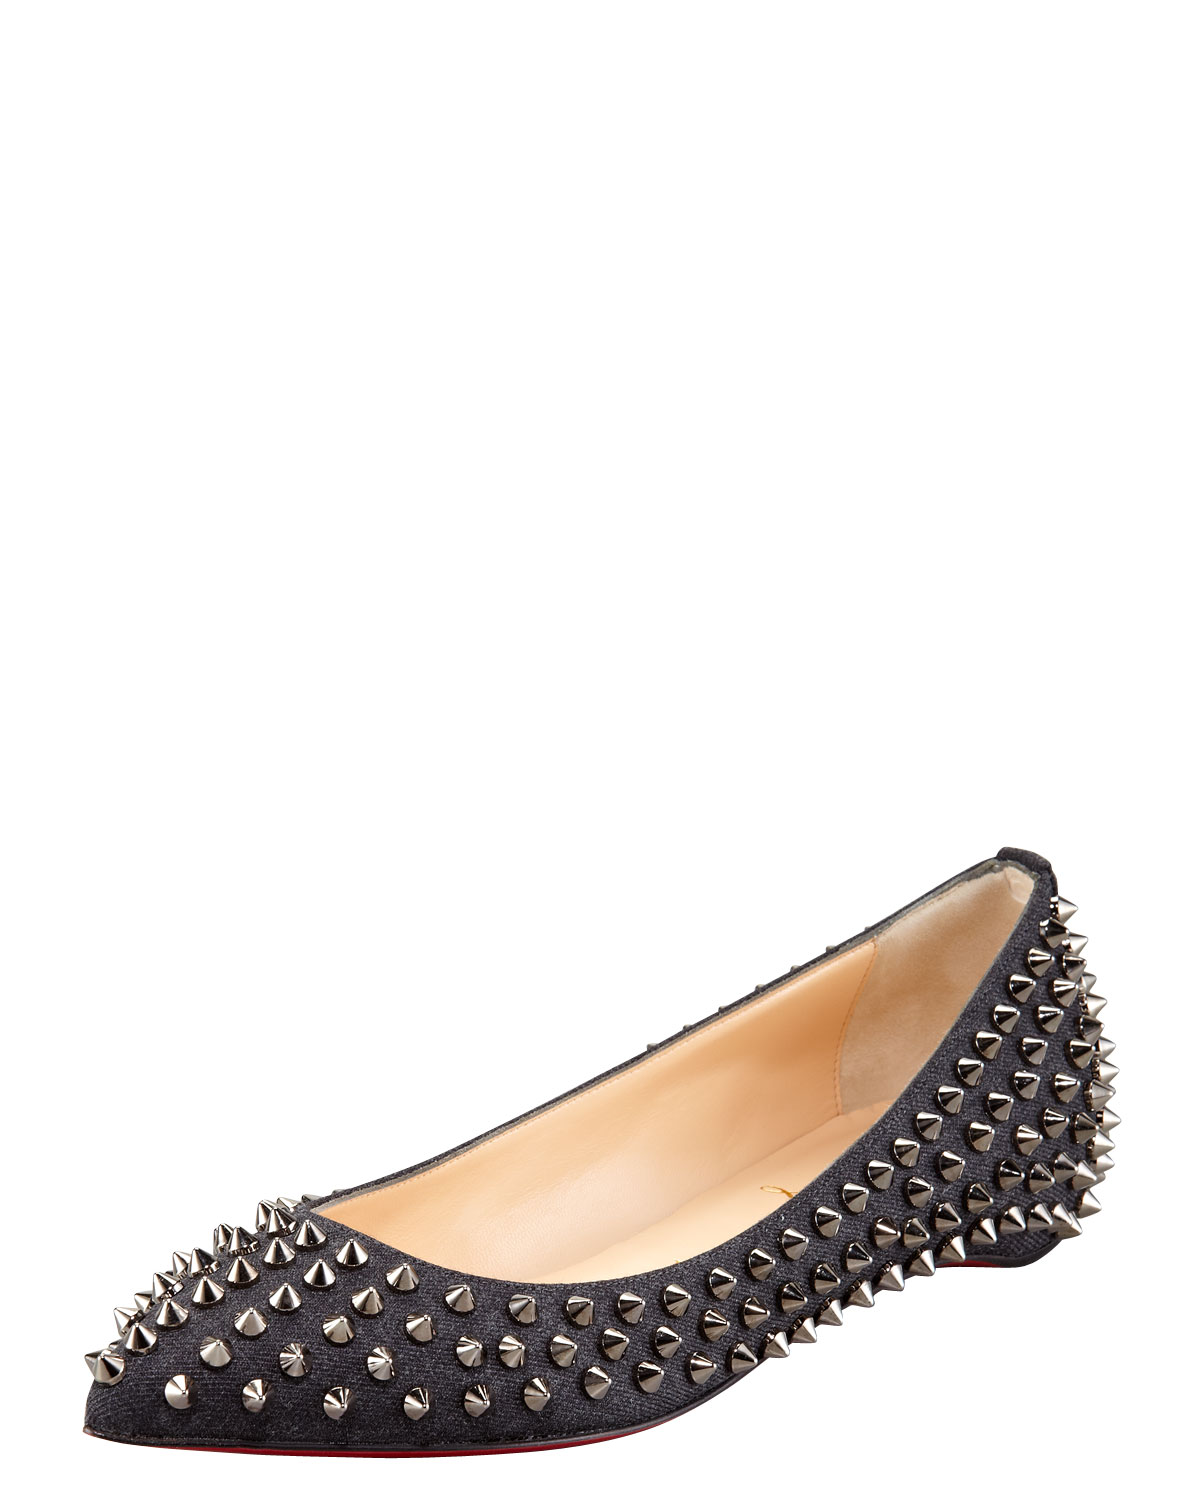 Flat Shoes With Spikes On Them